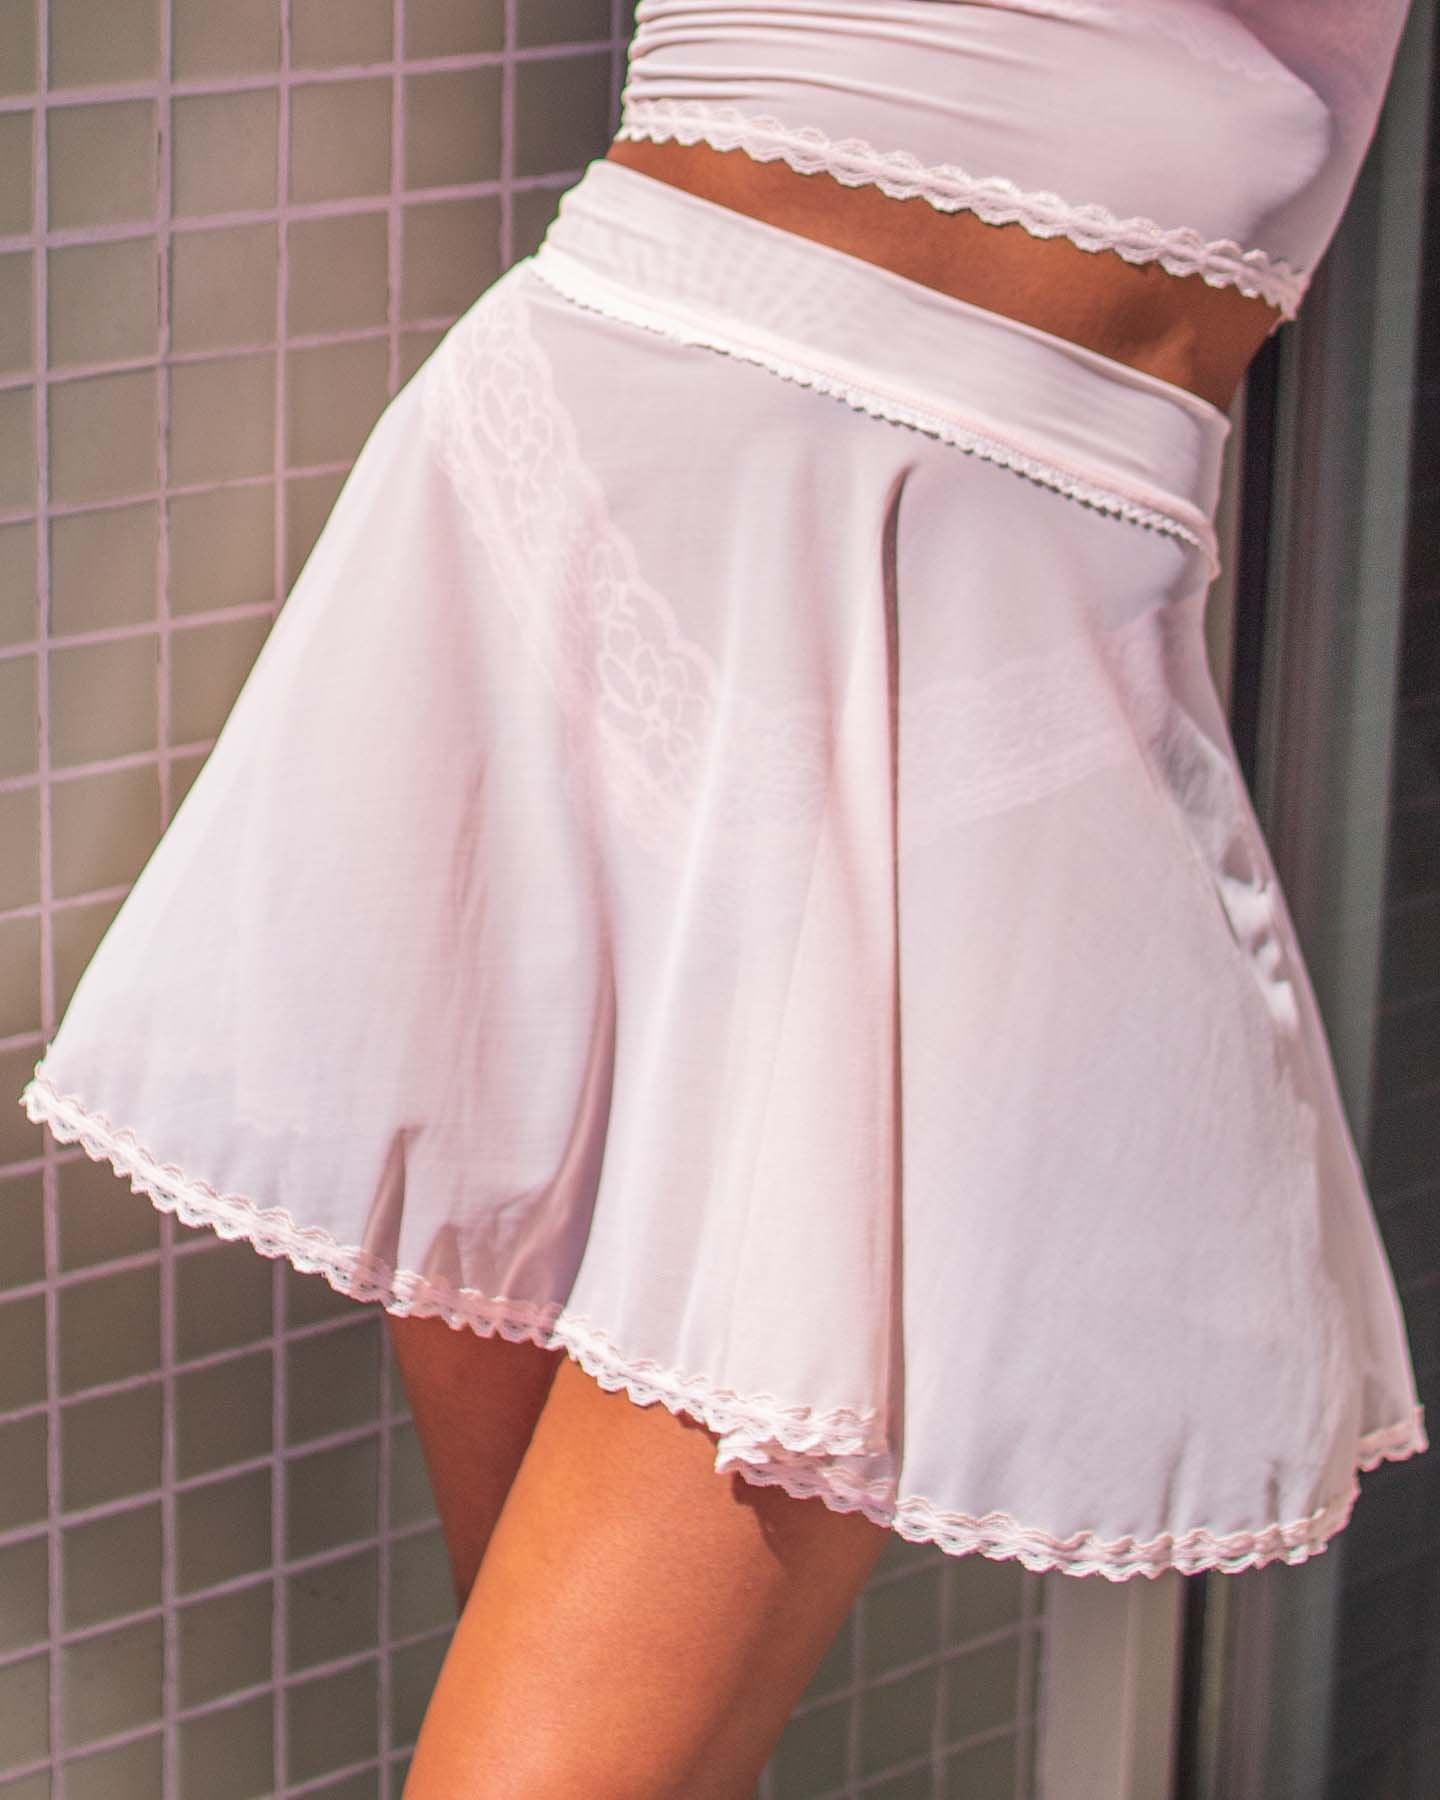 Sheer Flounce Skirt in Pale Pink - XS-3X